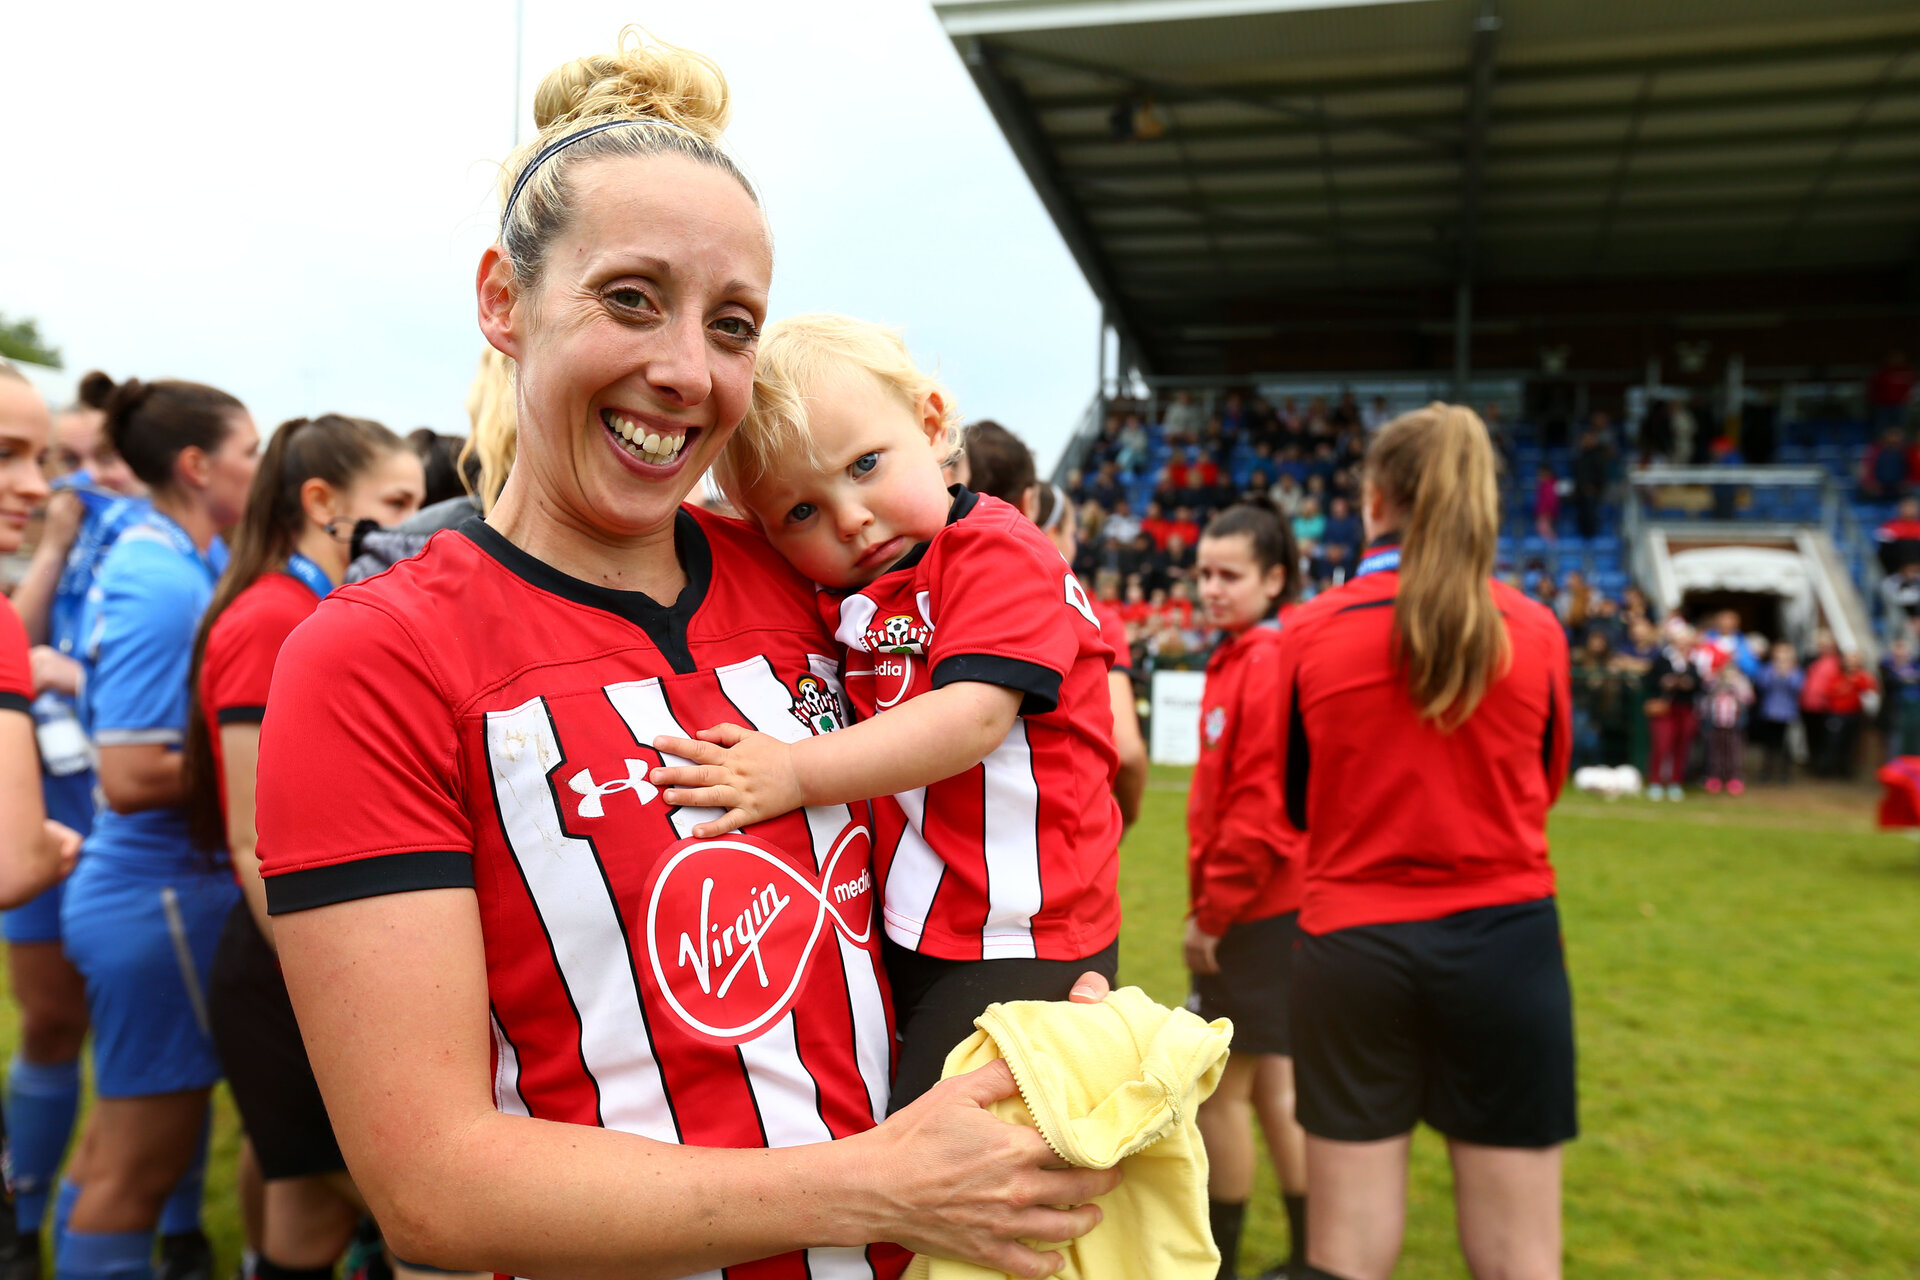 SOUTHAMPTON, ENGLAND - MAY 19: Shelly Proven with her young child after winning the Womens Cup Final match between Southampton FC and Oxford pictured at AFC Totten on May 19, 2019 in Southampton, England. (Photo by James Bridle - Southampton FC/Southampton FC via Getty Images)